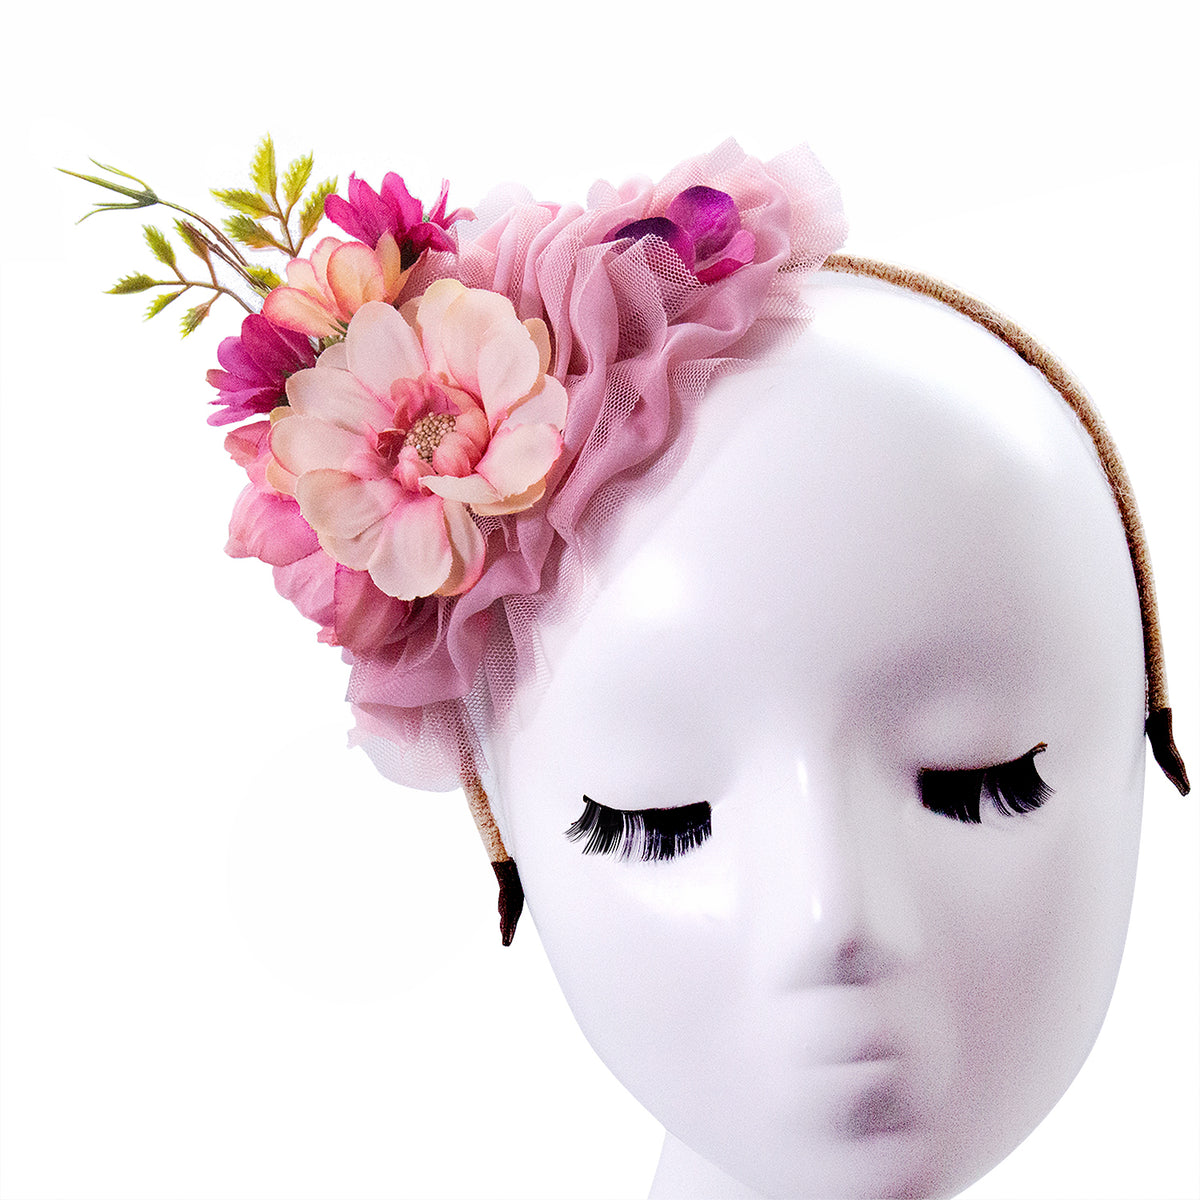 women's headband style fascinator with flowers